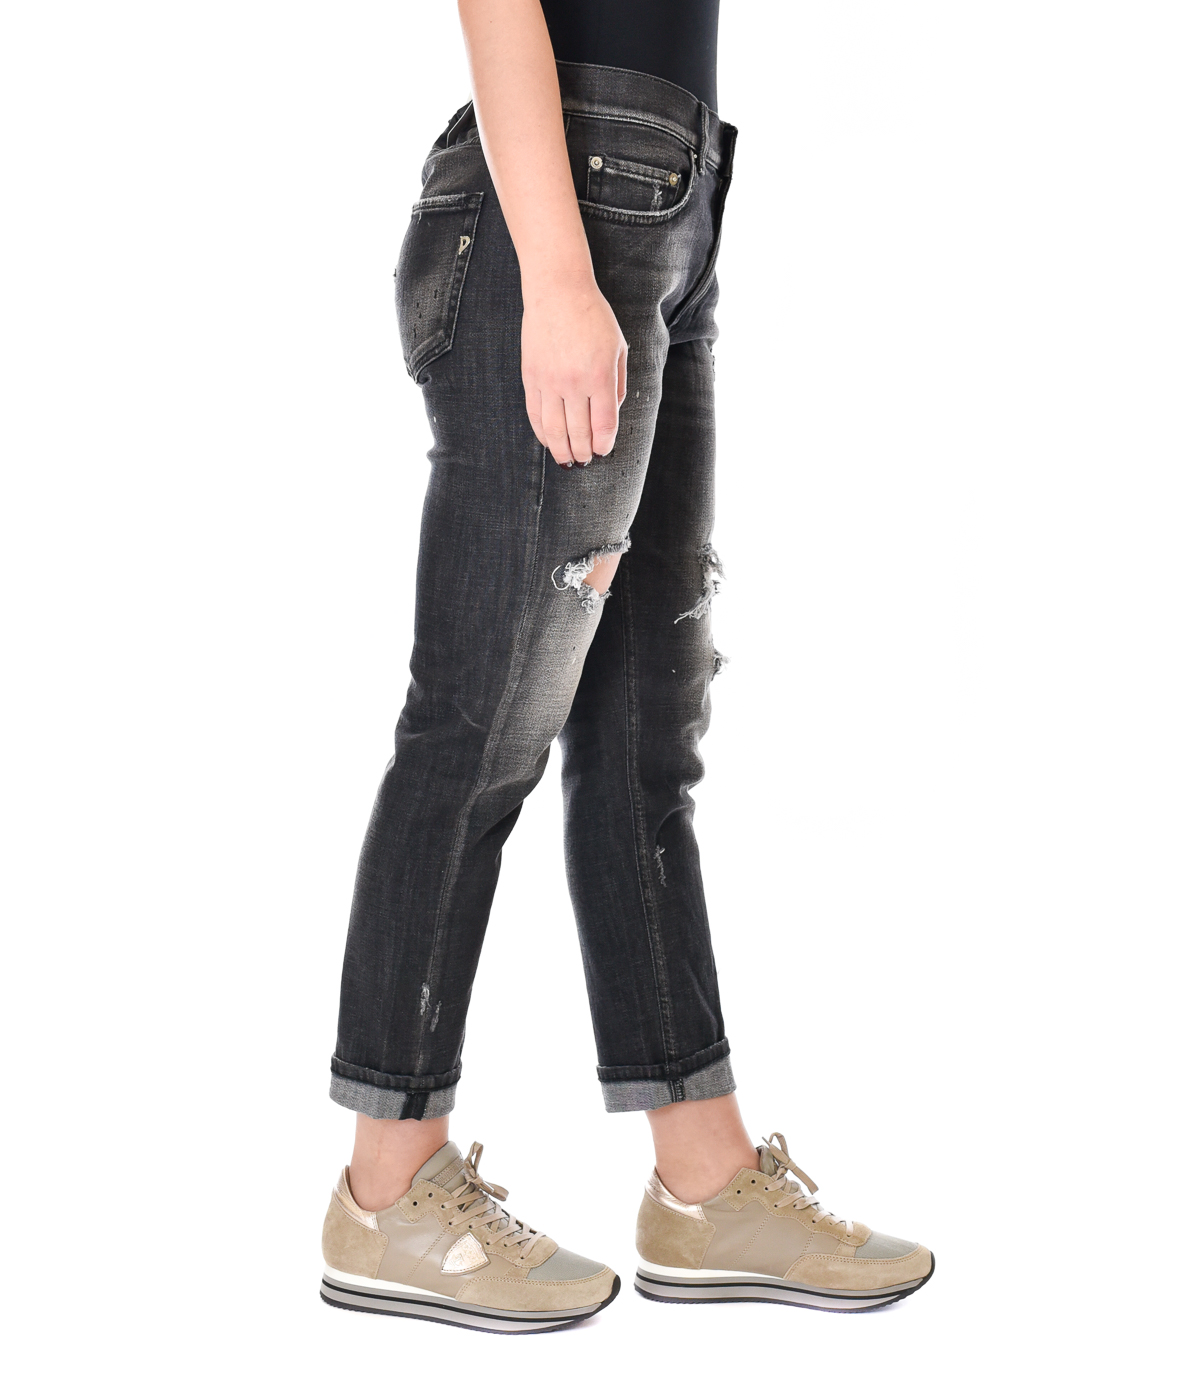 DONDUP JEANS DONNA NERO SKINNY FIT CON ROTTURE